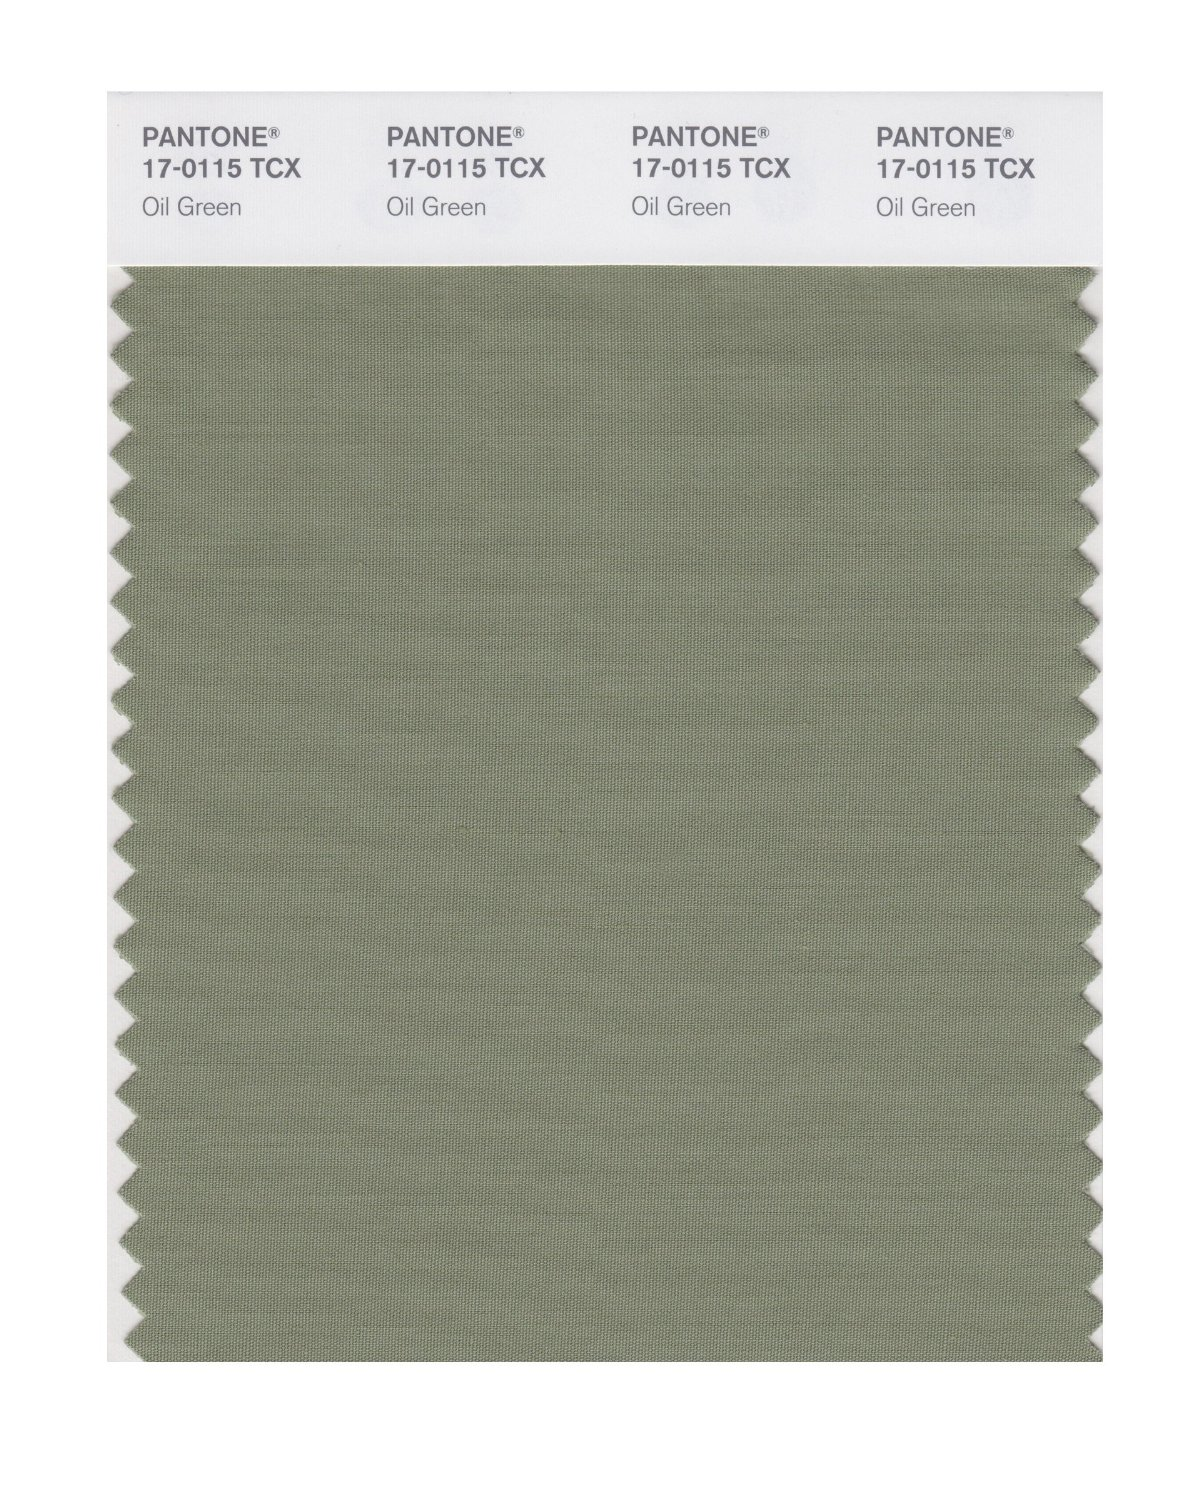 Pantone Smart Swatch 17-0115 Oil Green